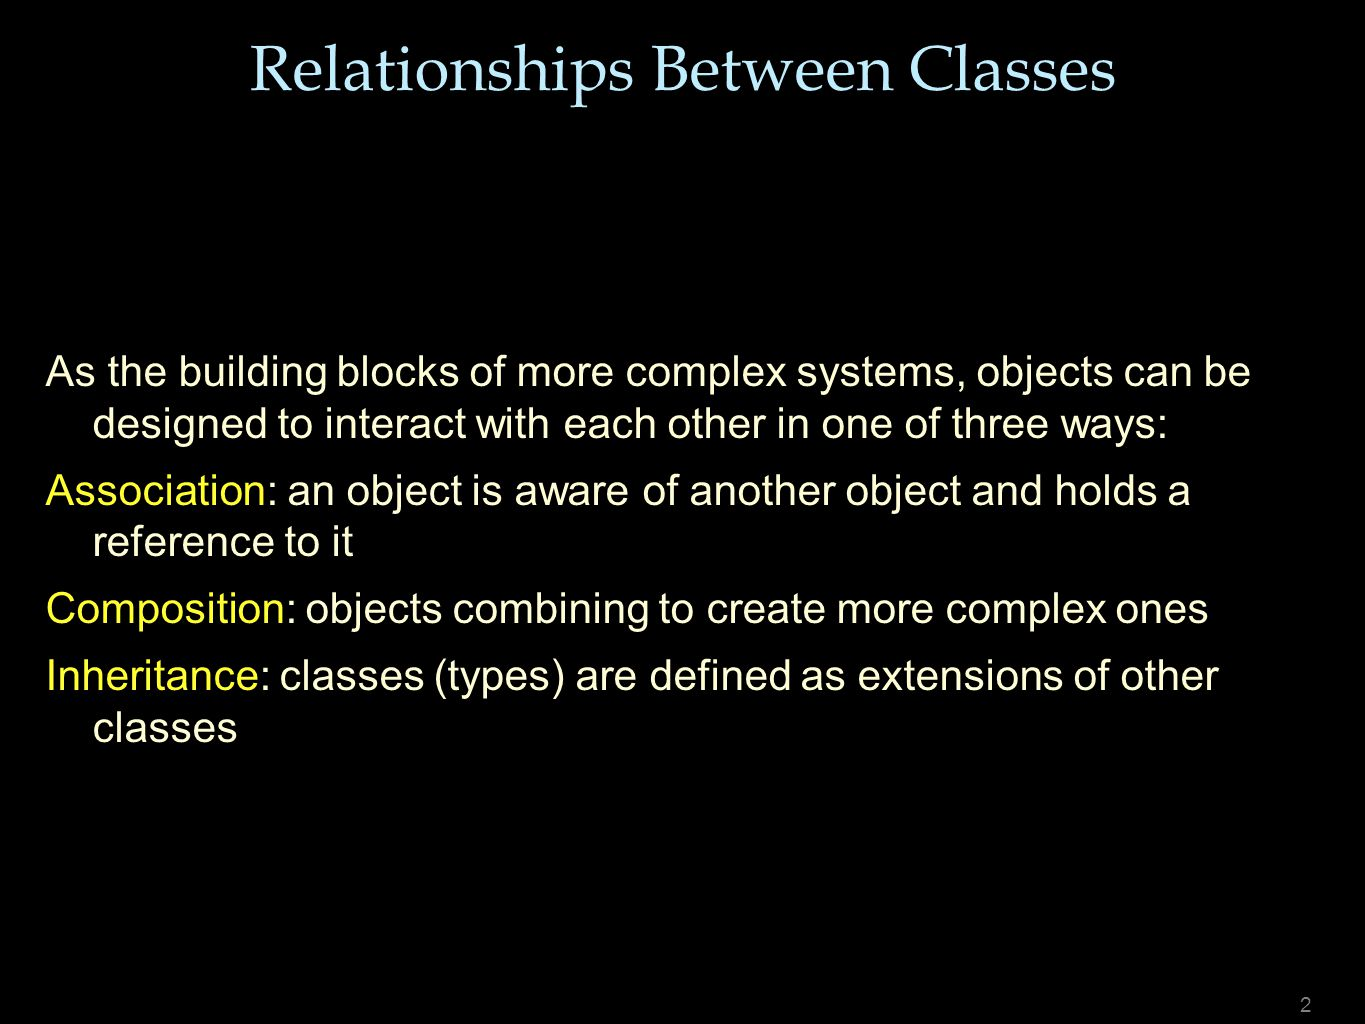 2 As the building blocks of more complex systems, objects can be designed to interact with each other in one of three ways: Association: an object is